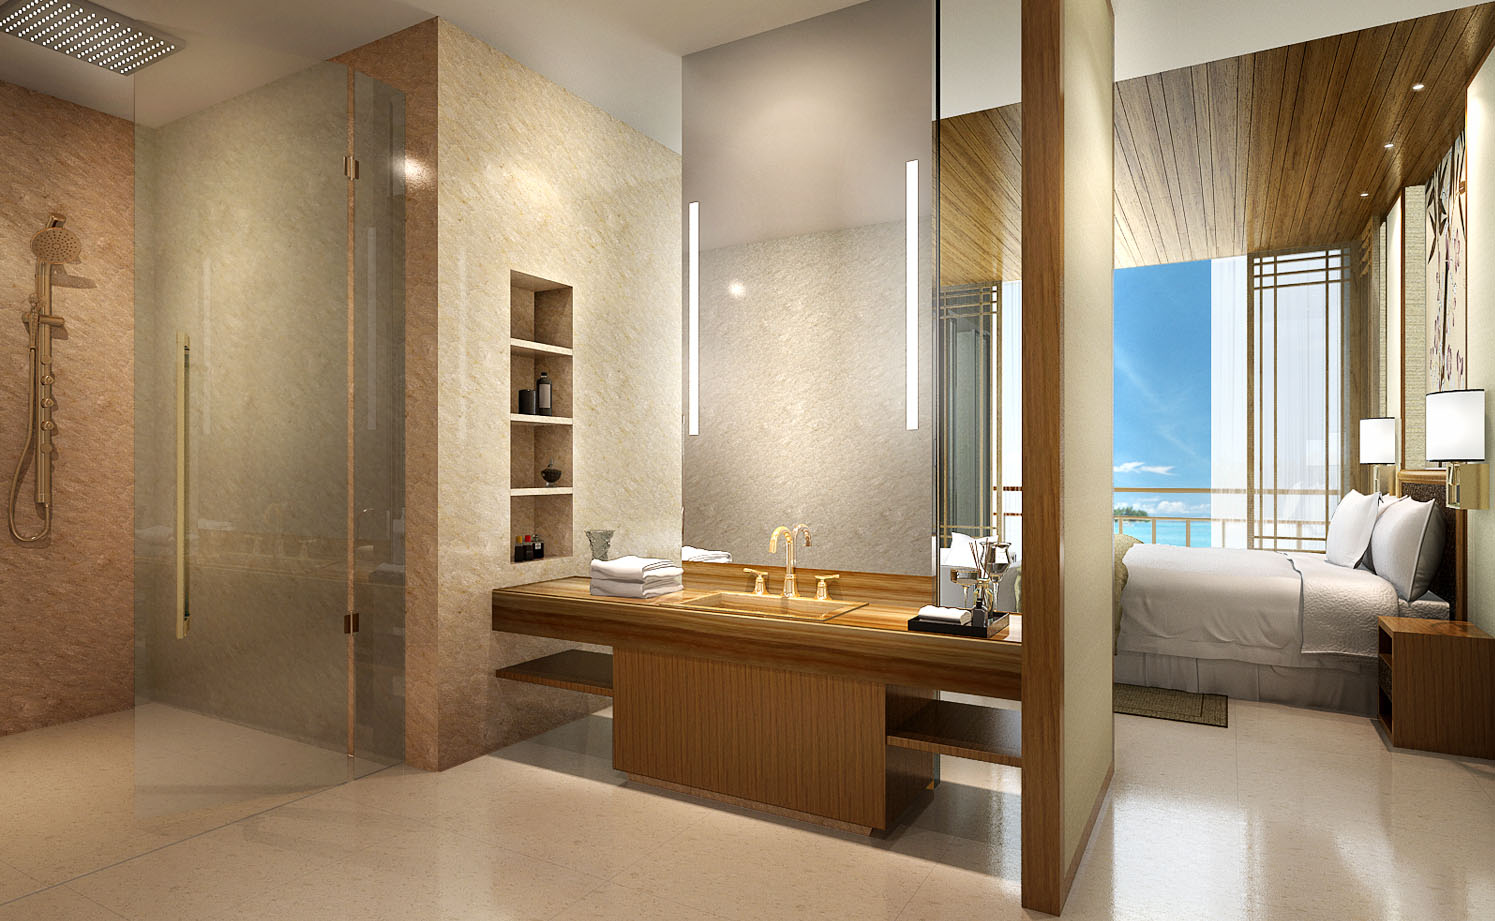 Attitude Asia Interior Design Luxury interior by Suzanne Wong Citic Hyatt Hainan